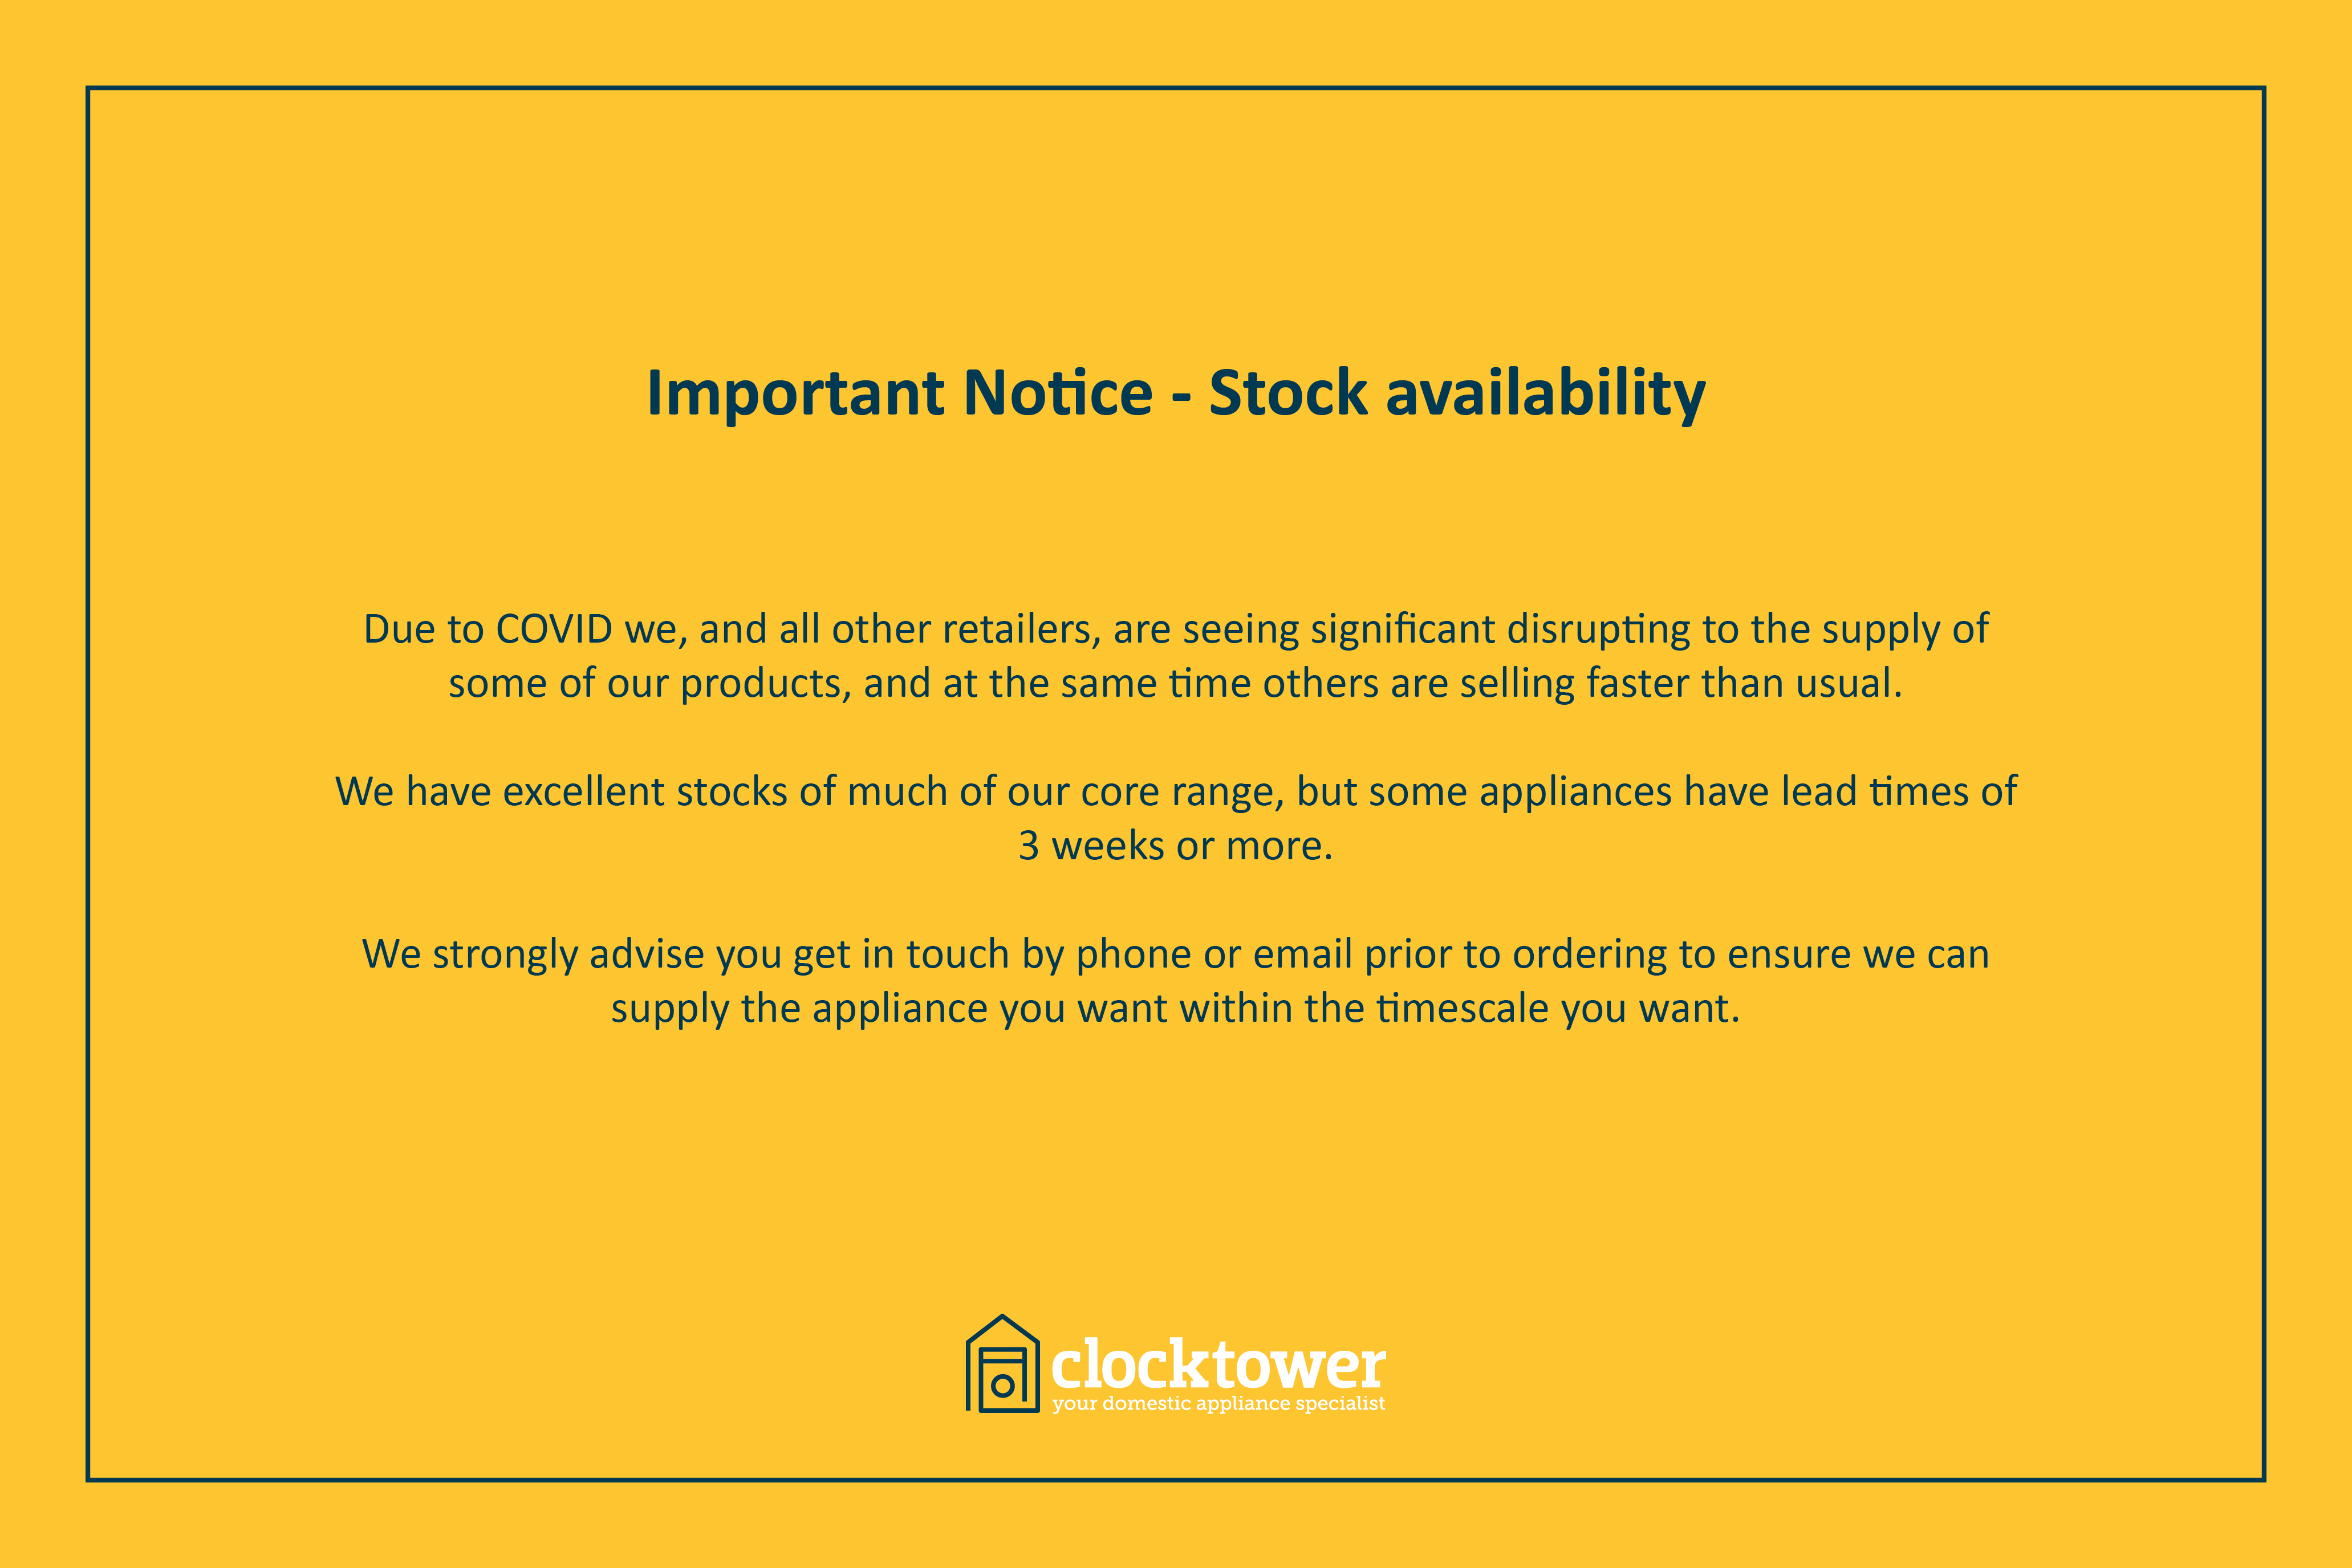 Important Notice - Stock availability